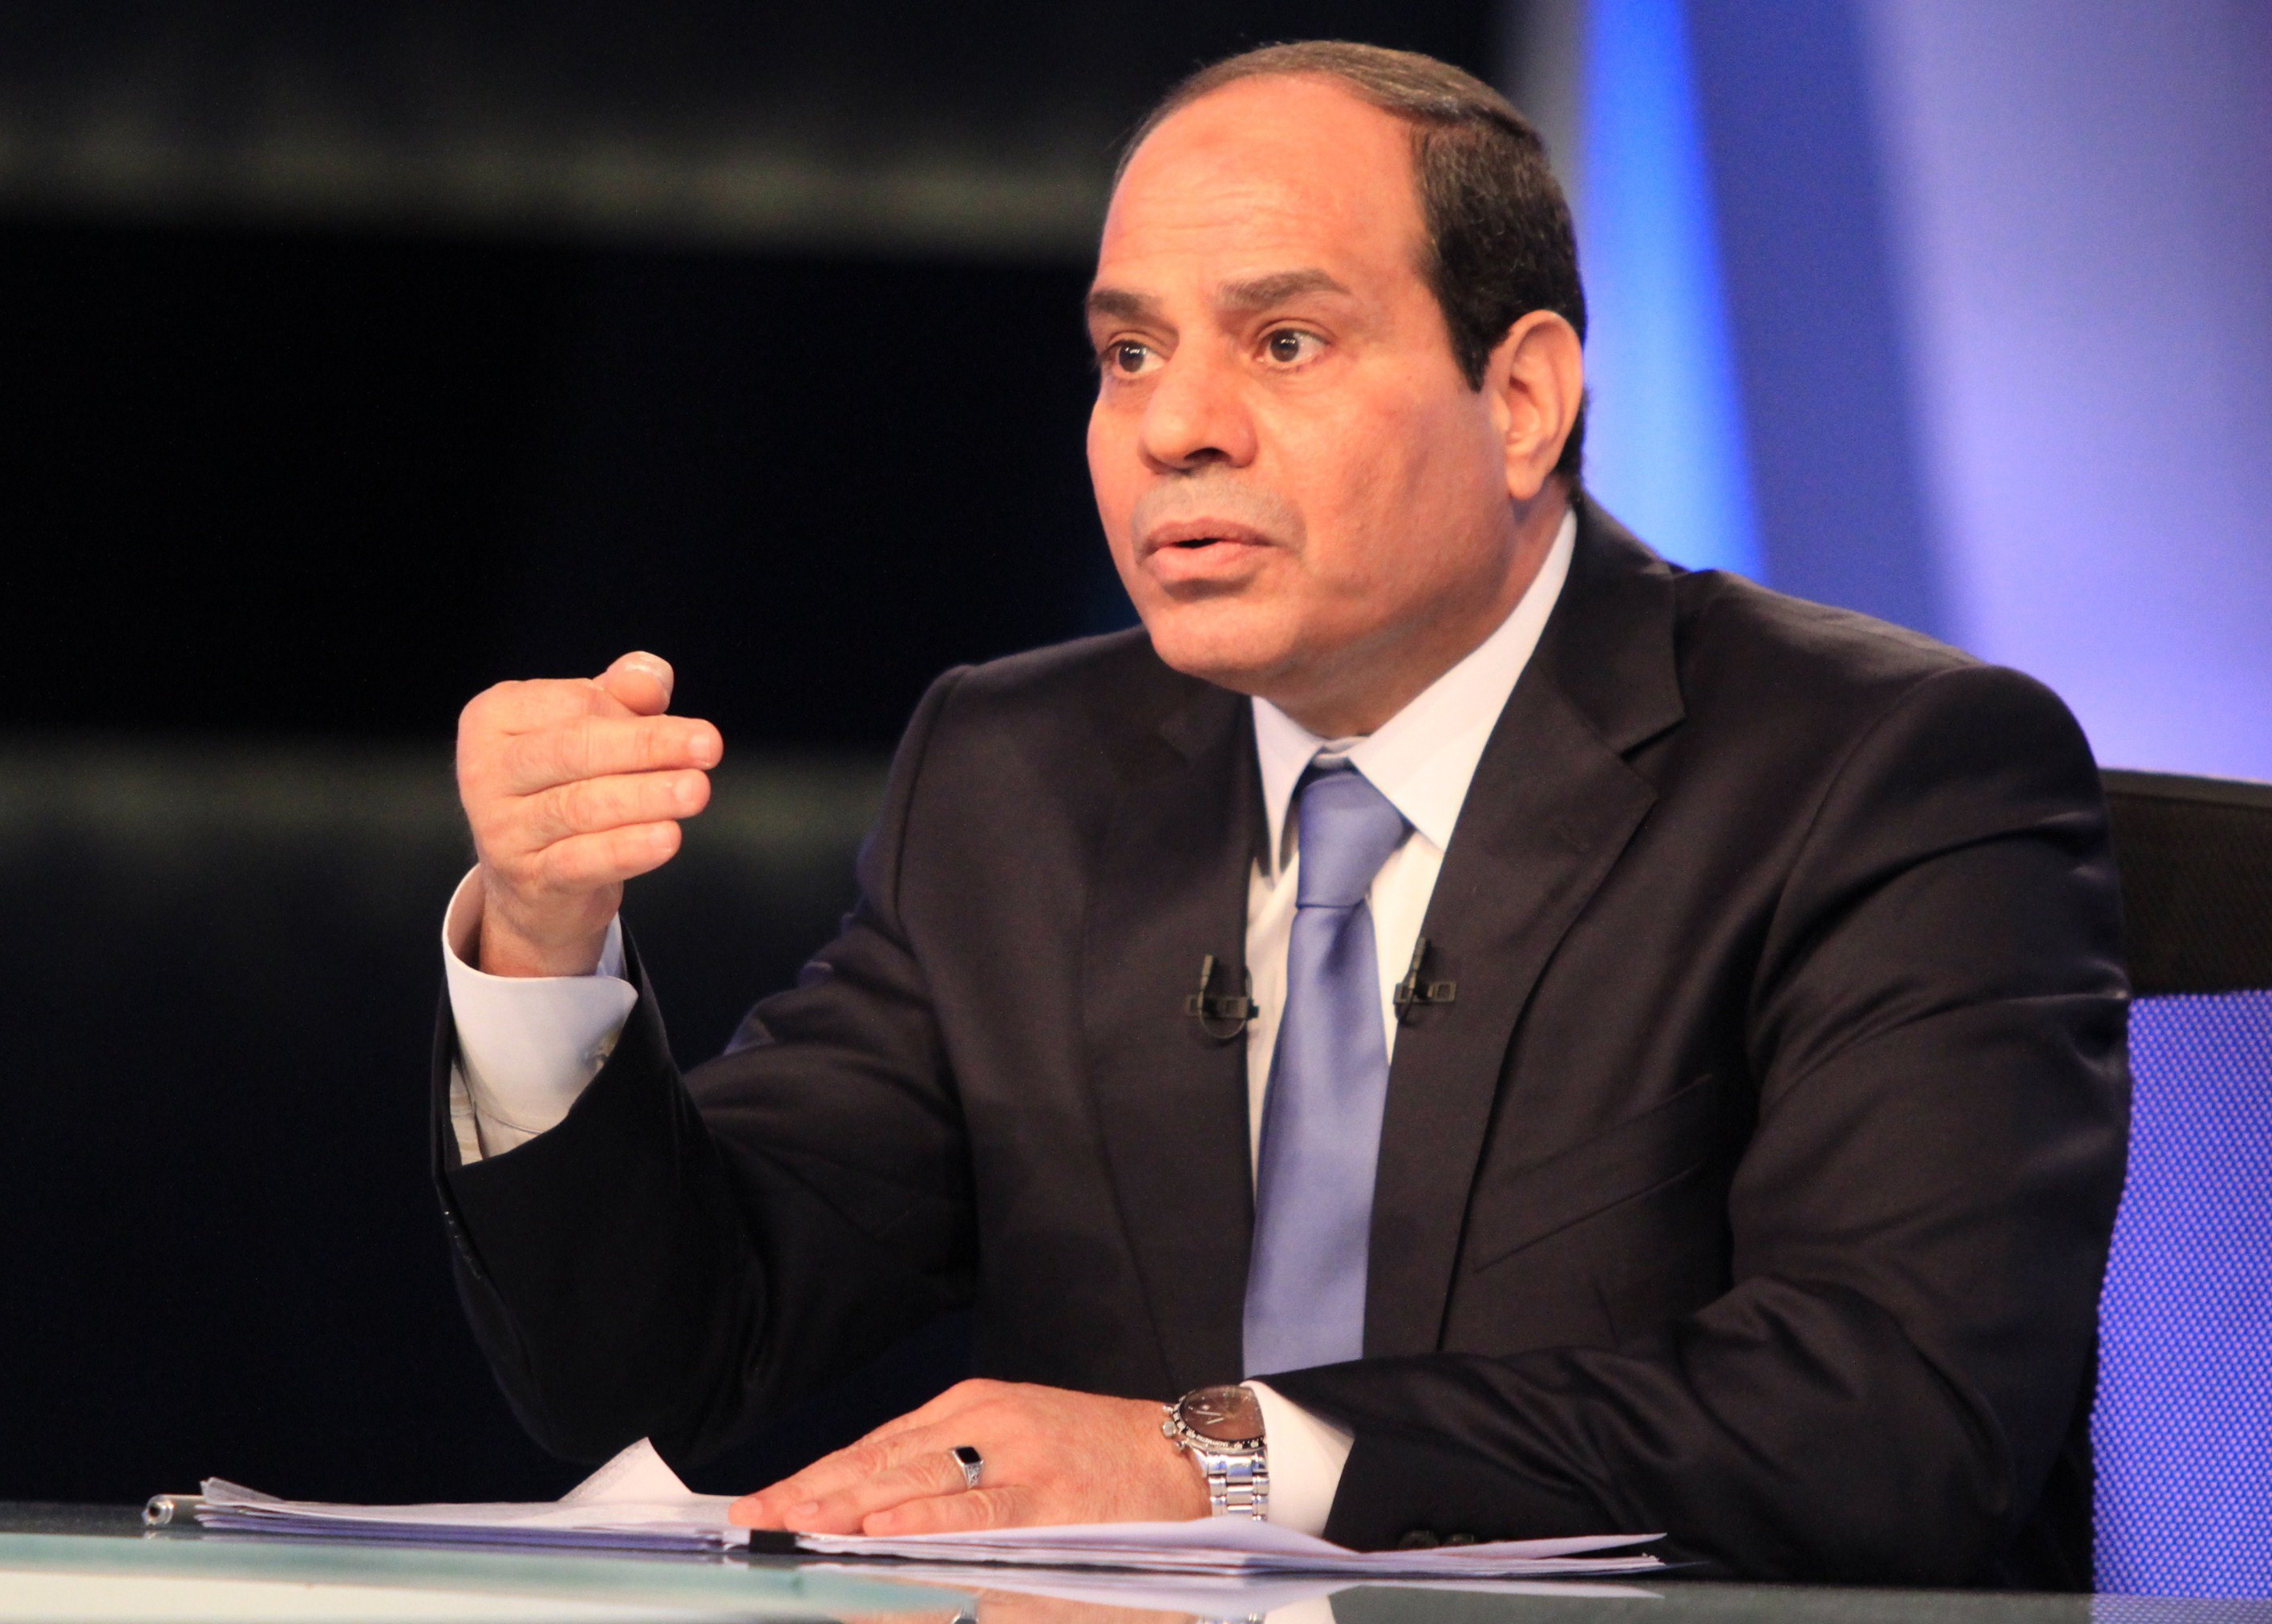 There Are Terrorist Elements in Syria Said Egypt's President, There Are Terrorist Elements in Syria Said Egypt's President